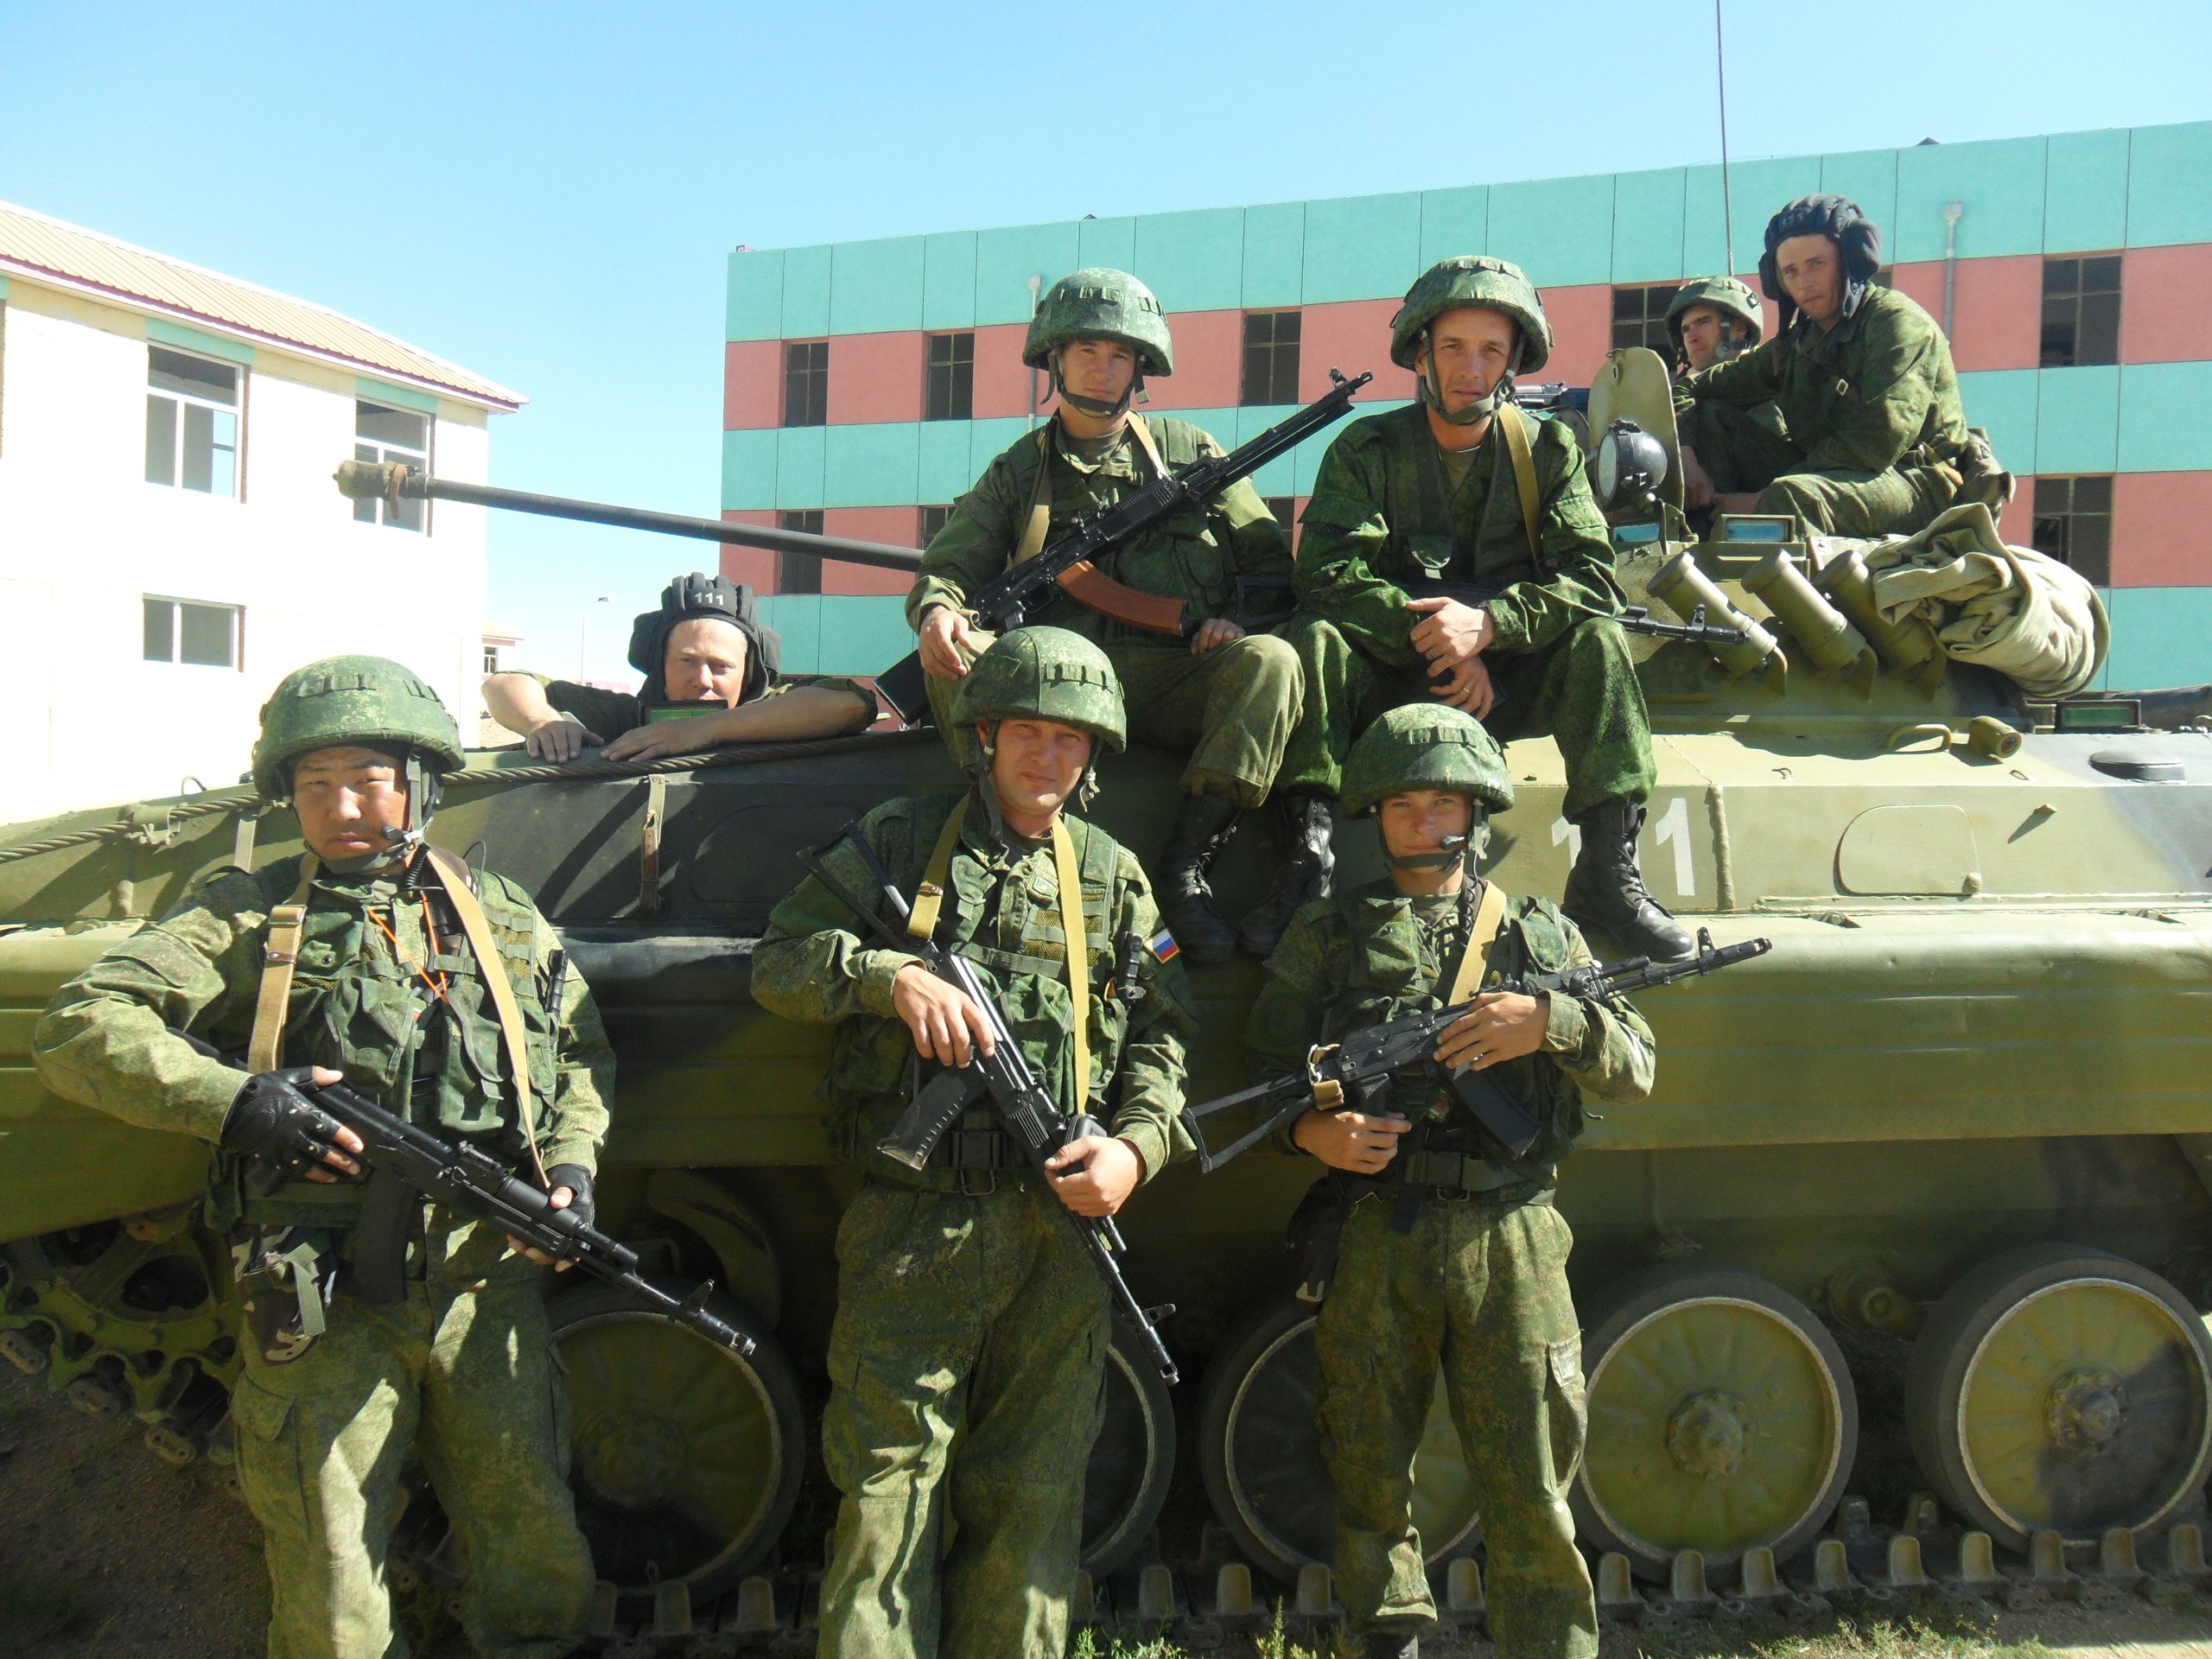 Russian Military Photos and Videos #2 - Page 33 VmJQ-c9JtDQ